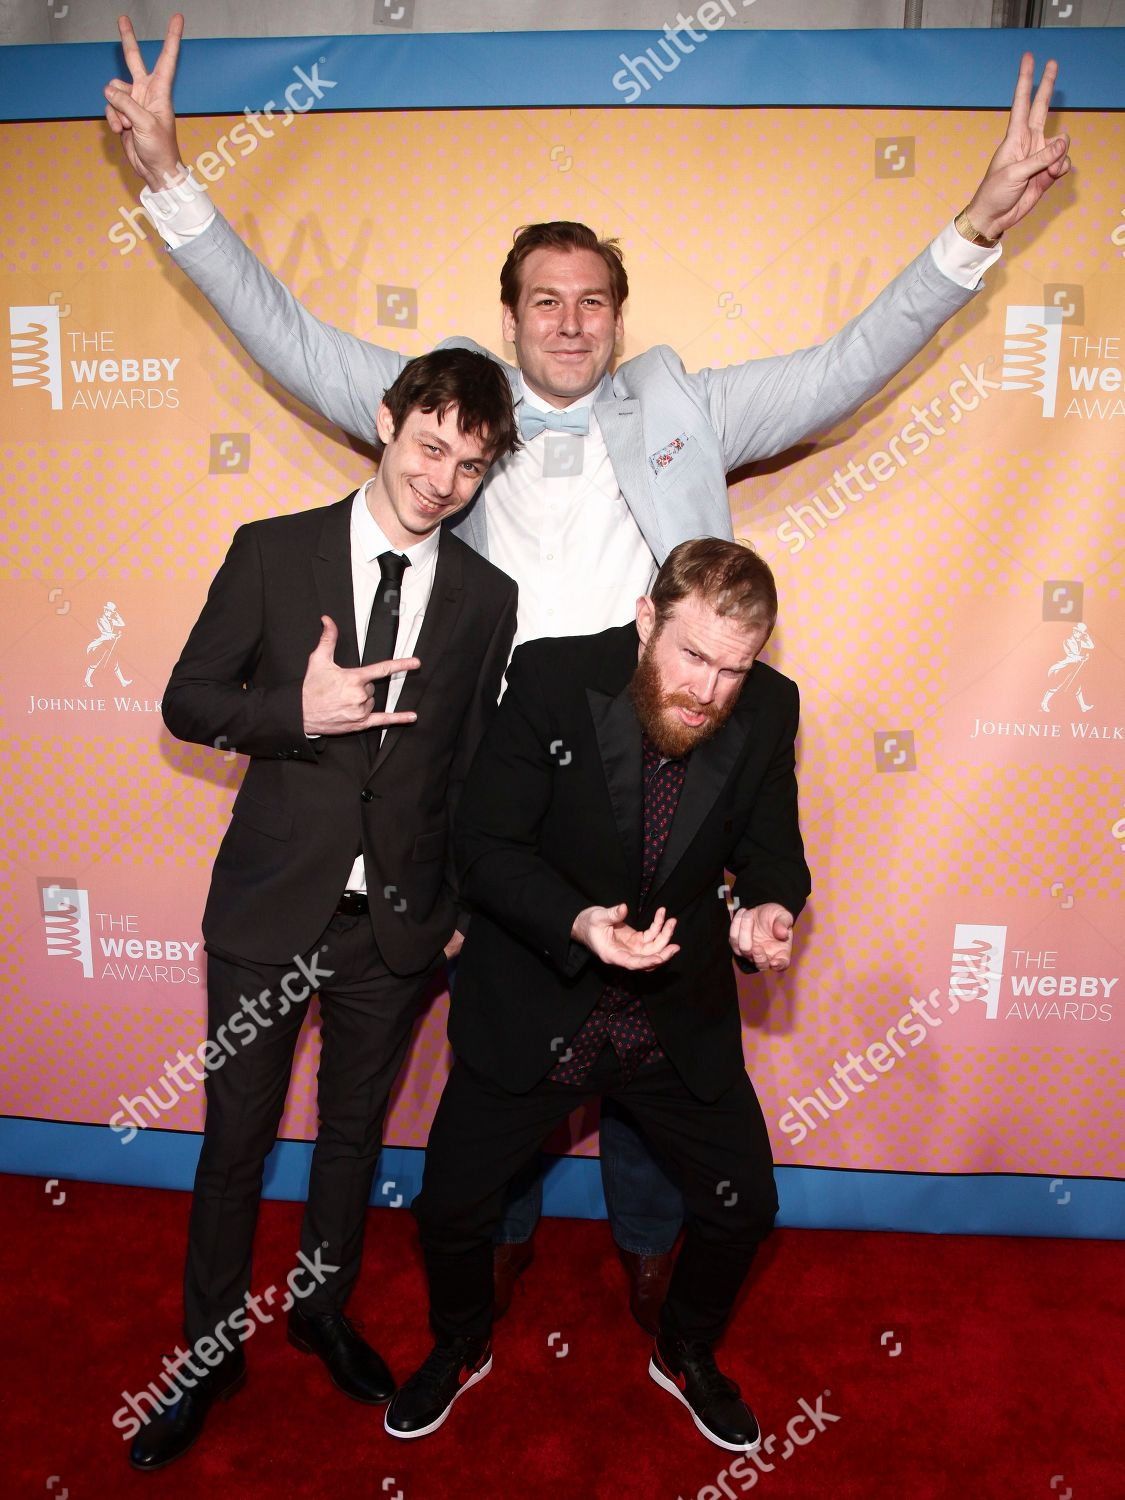 Marcus Parks Left Ben Kissel Henry Zebrowski Editorial Stock Photo Stock Image Shutterstock Marcus parks ретвитнул(а) last podcast network. https www shutterstock com editorial image editorial 2017 webby awards new york usa 15 may 2017 9241520av